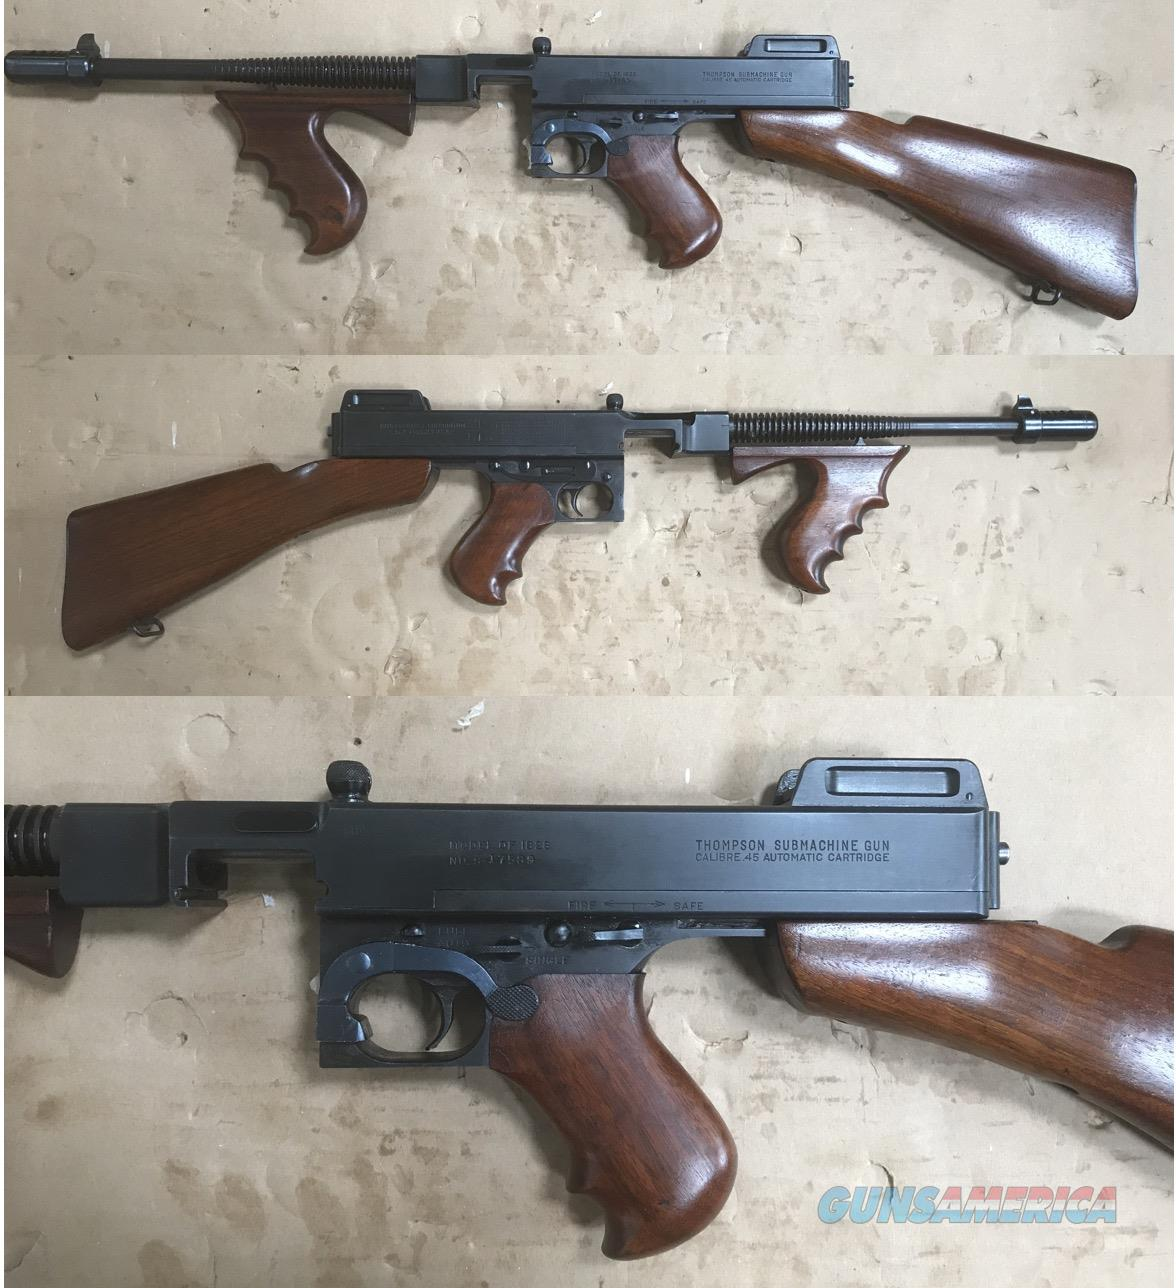 1928 Savage Commerical SMG C&R  Guns > Rifles > Class 3 Rifles > Class 3 Subguns